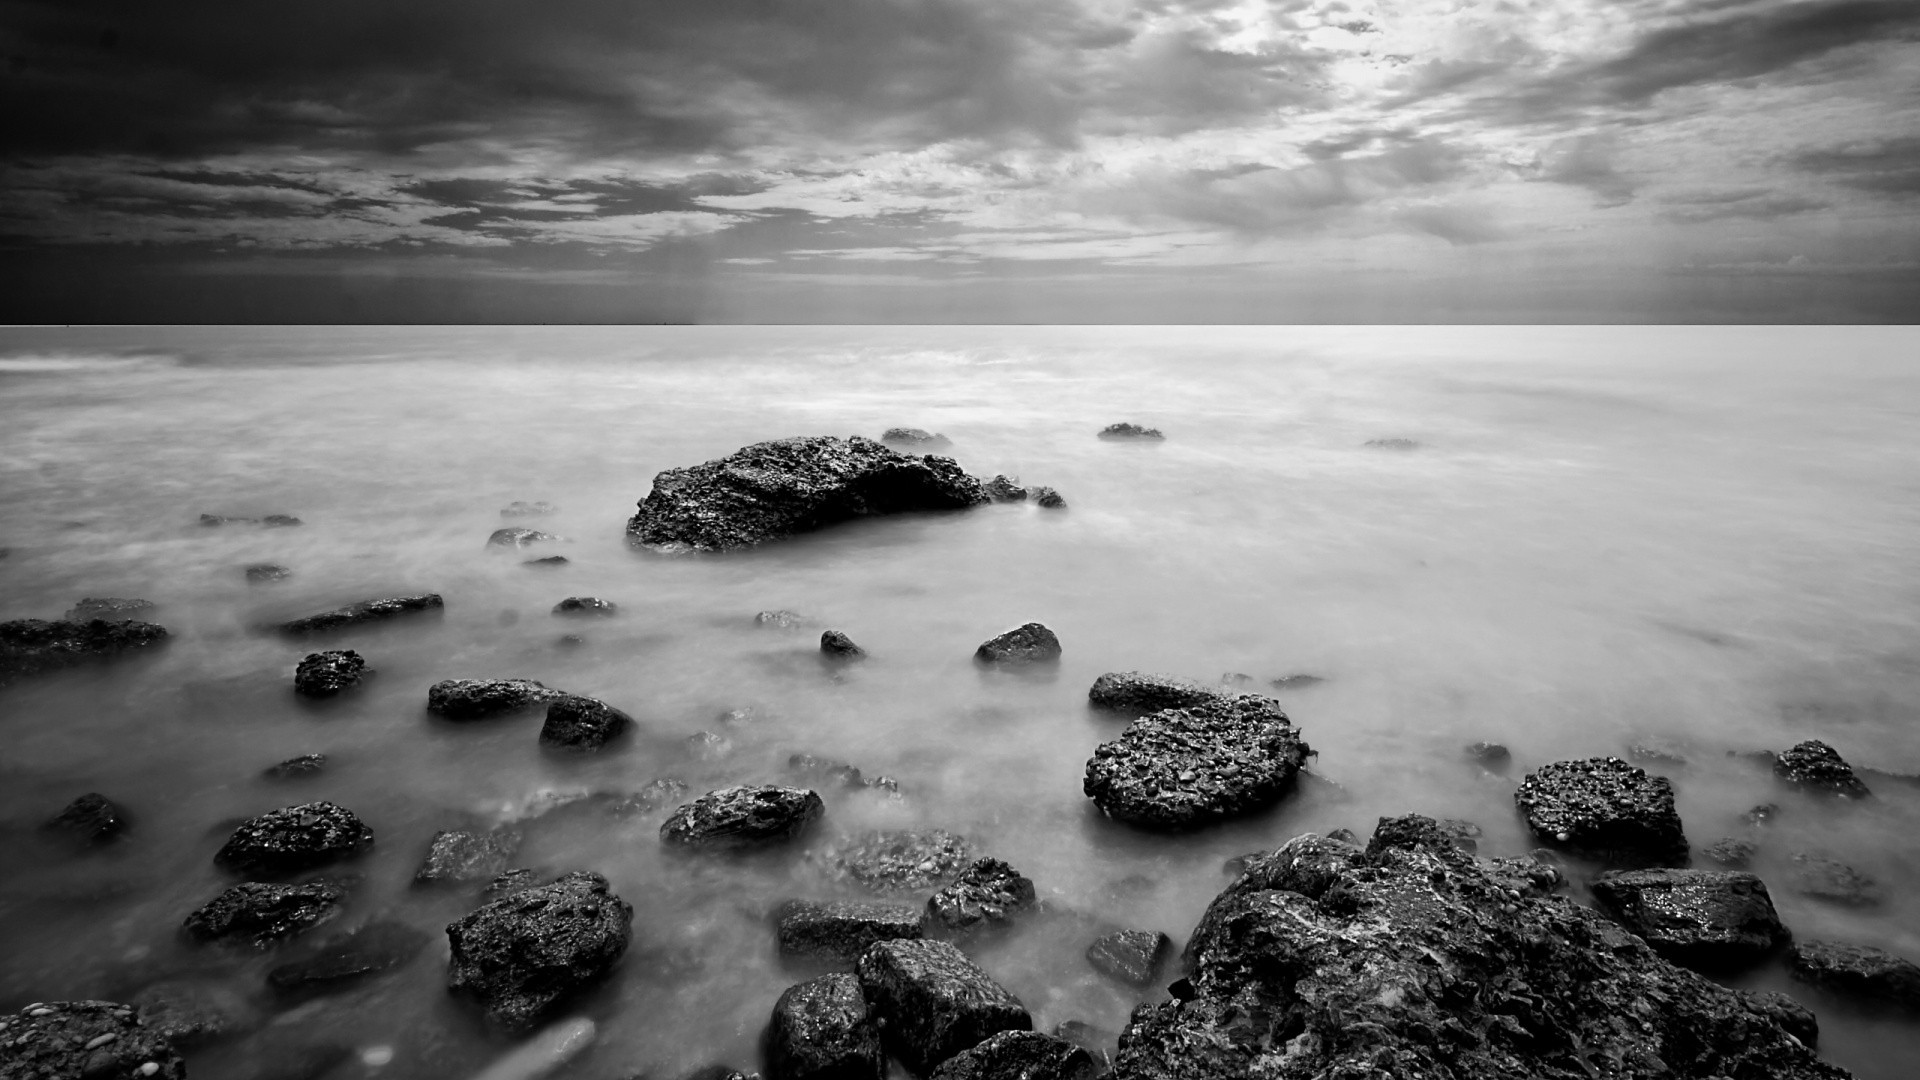 Black and white landscapes nature monochrome sea wallpaper 1920x1080 1920x1080